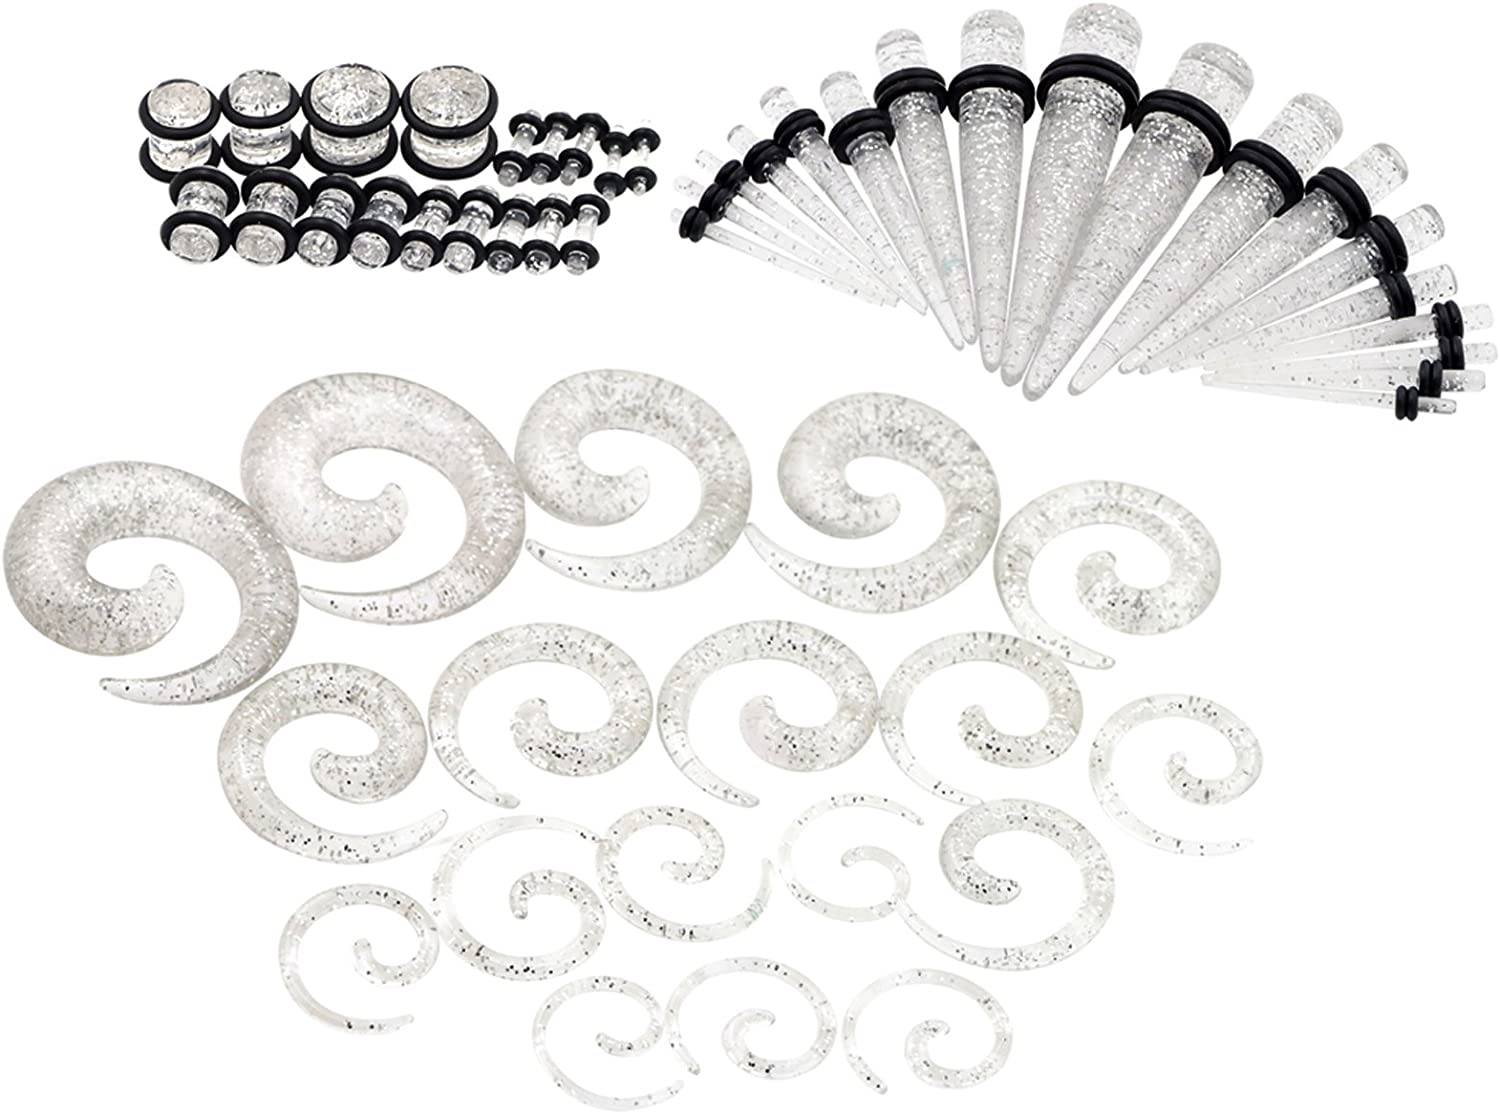 Oyaface 54PC Gauges Kit Ear Stretching 14G-00G Acrylic Spiral Tapers Plugs Boday Piercing Set